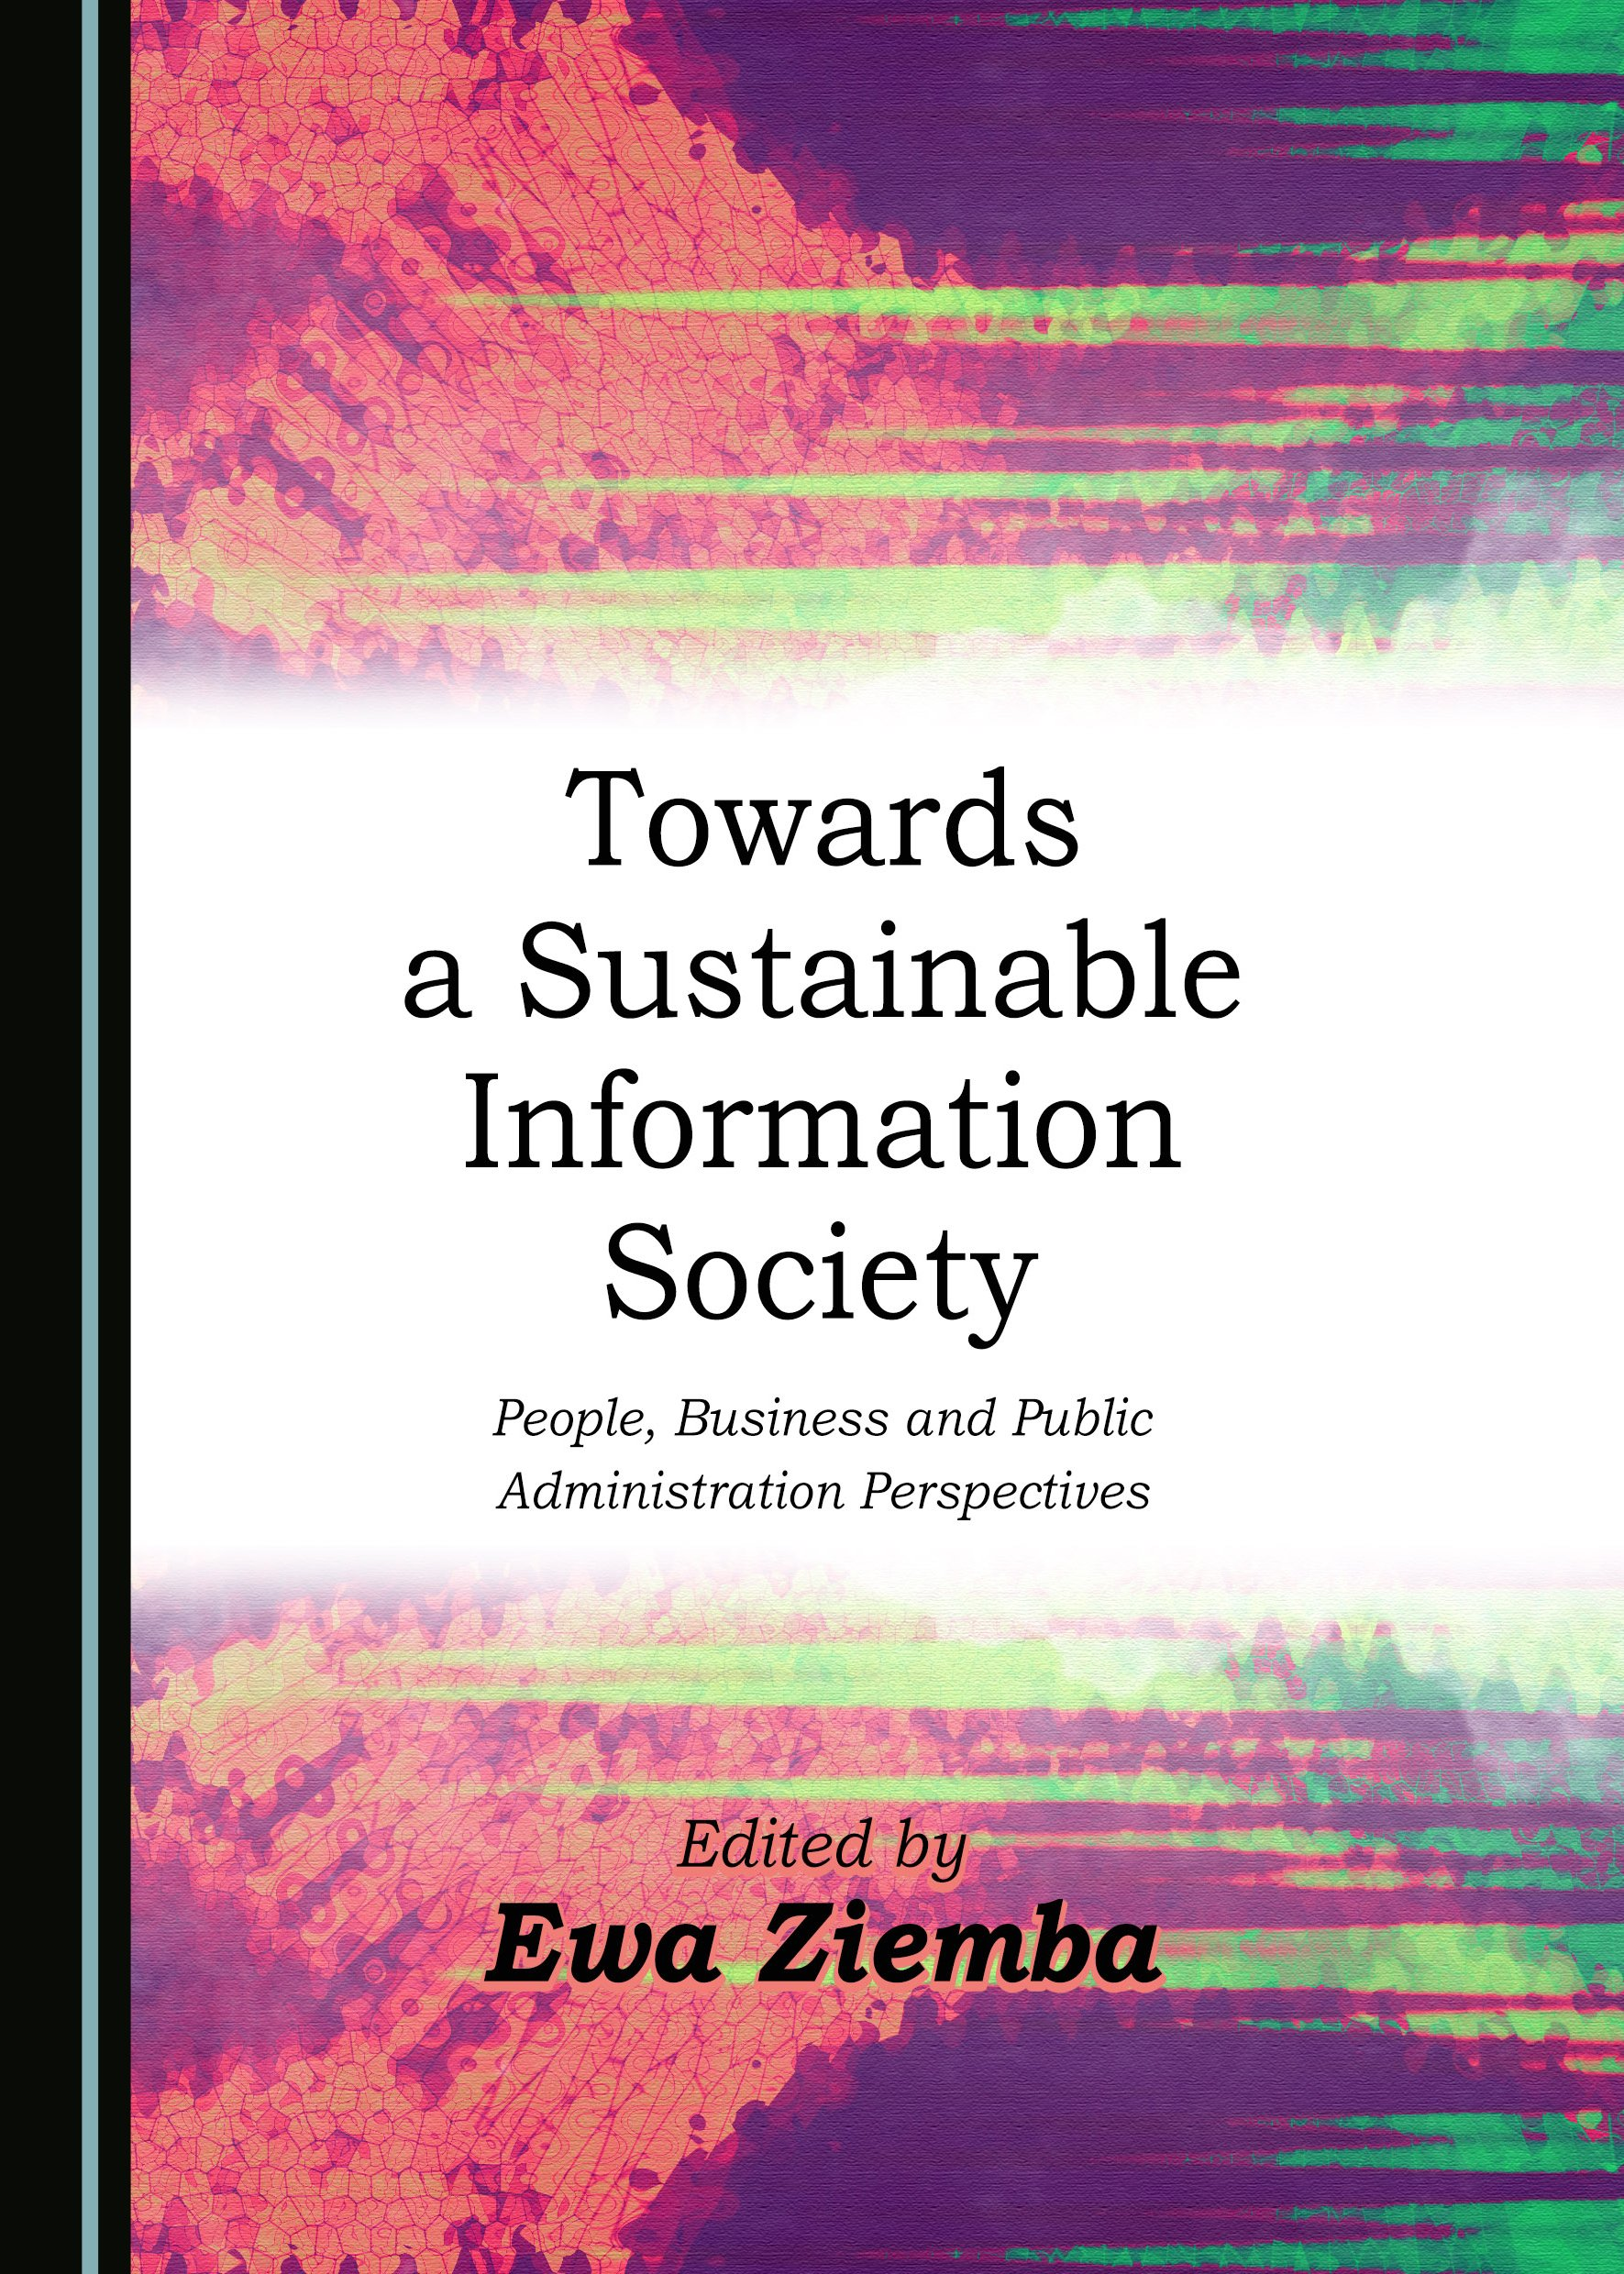 Towards a Sustainable Information Society: People, Business and Public Administration Perspectives